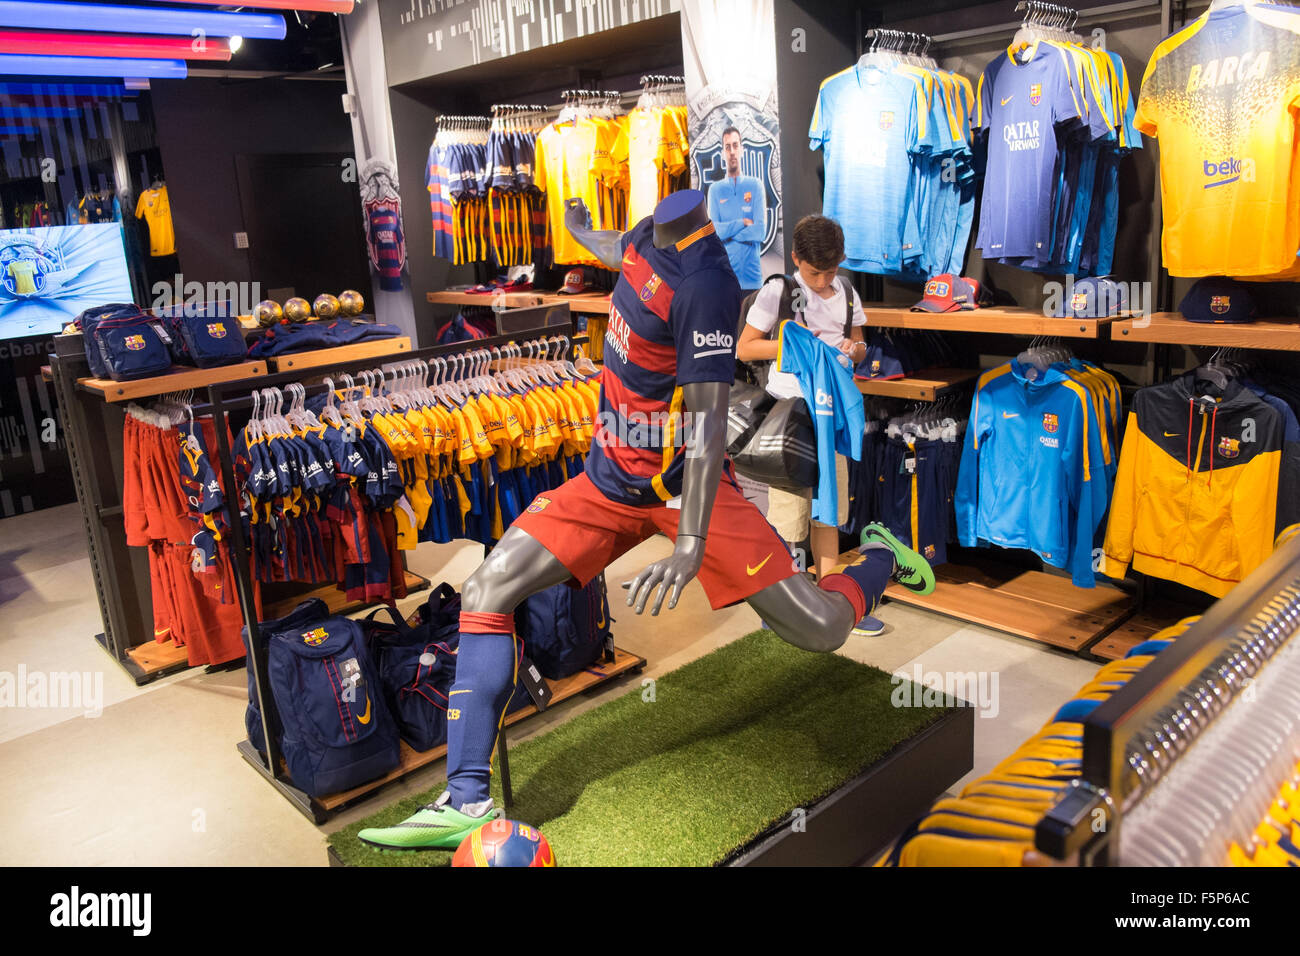 Official Barcelona Football Club shop,outlet at concourse at Sants high-speed,TGV, train station,Barcelona,Catalonia,Spain, - Stock Image